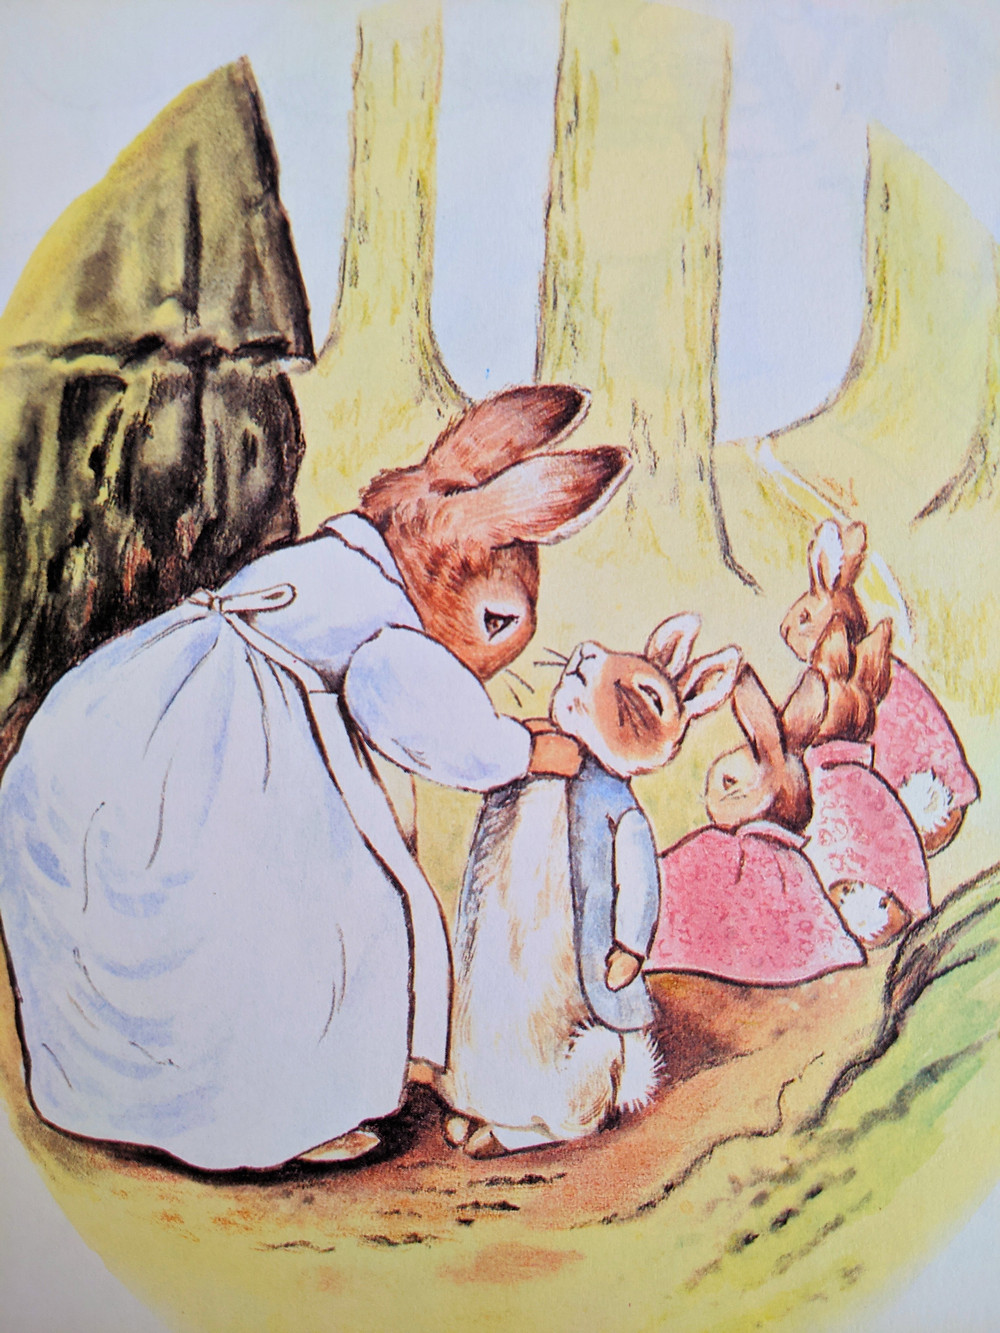 The Tale of Peter Rabbit by Beatrix Potter Peter' mom straightening bunny Peter's jacket with sisters behind him